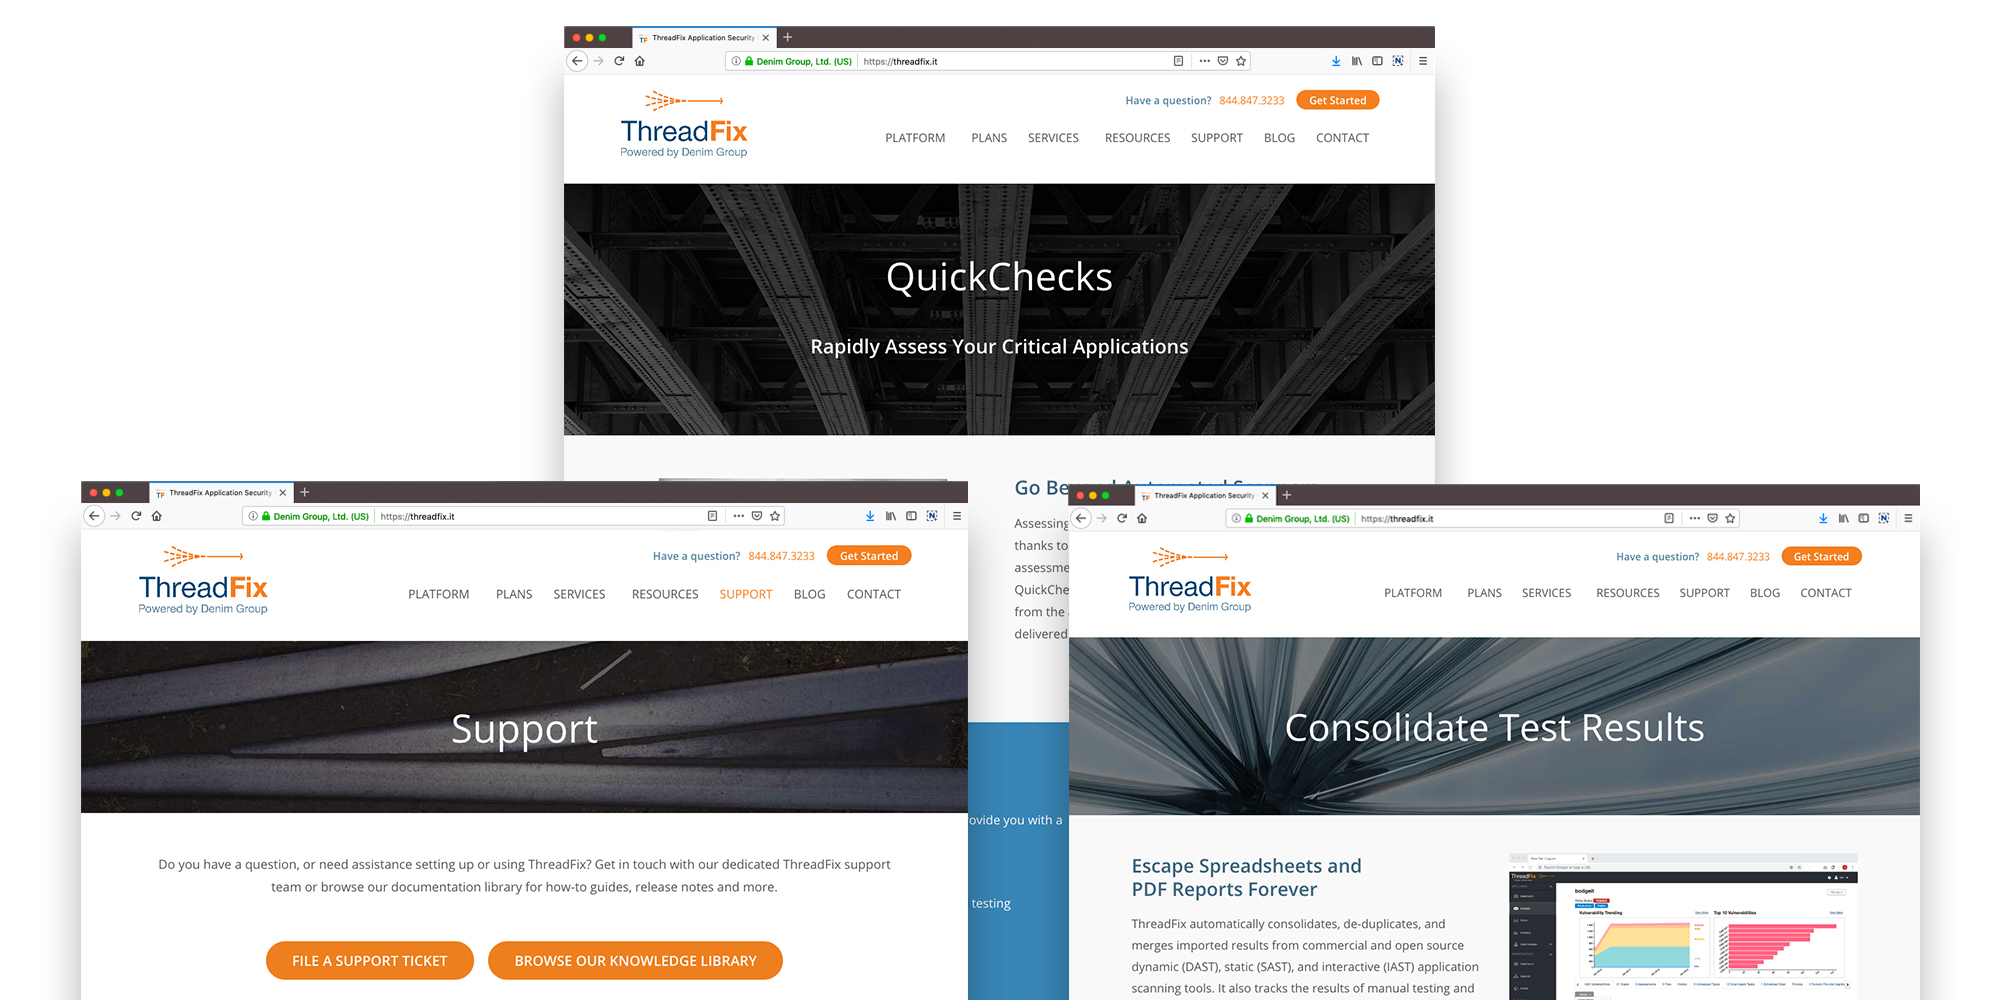 ThreadFix Header Images Website Design